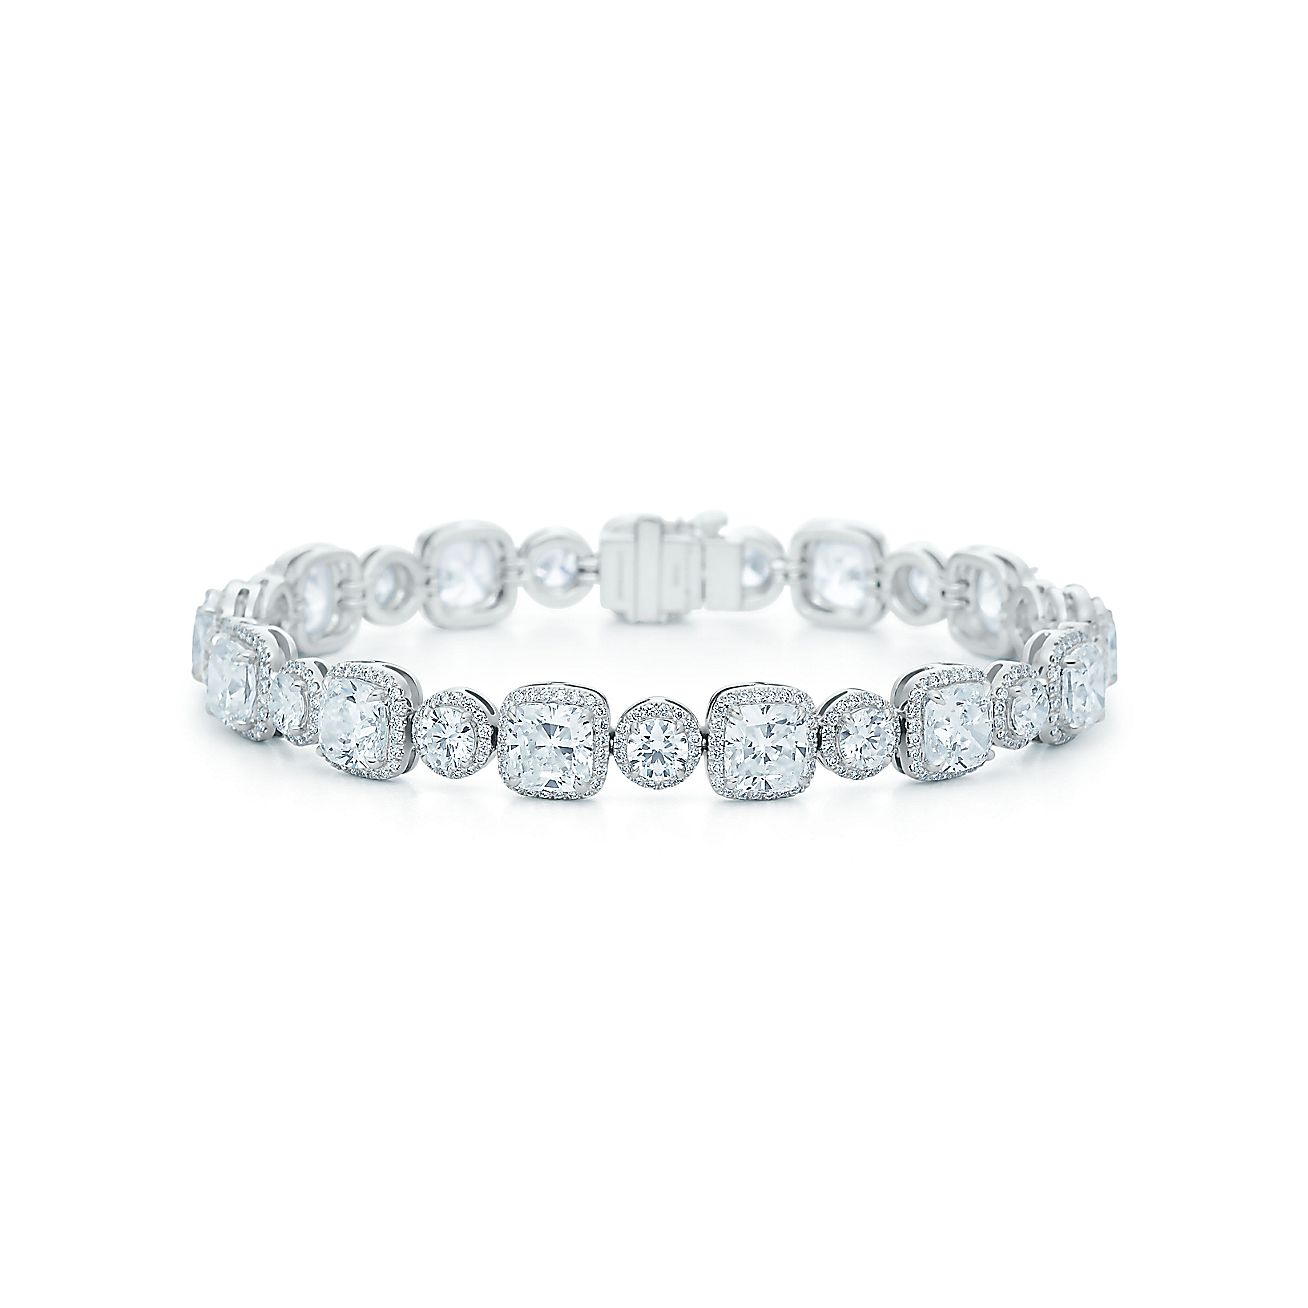 Cushion-cut and<br>Round Brilliant<br>Diamond Bracelet